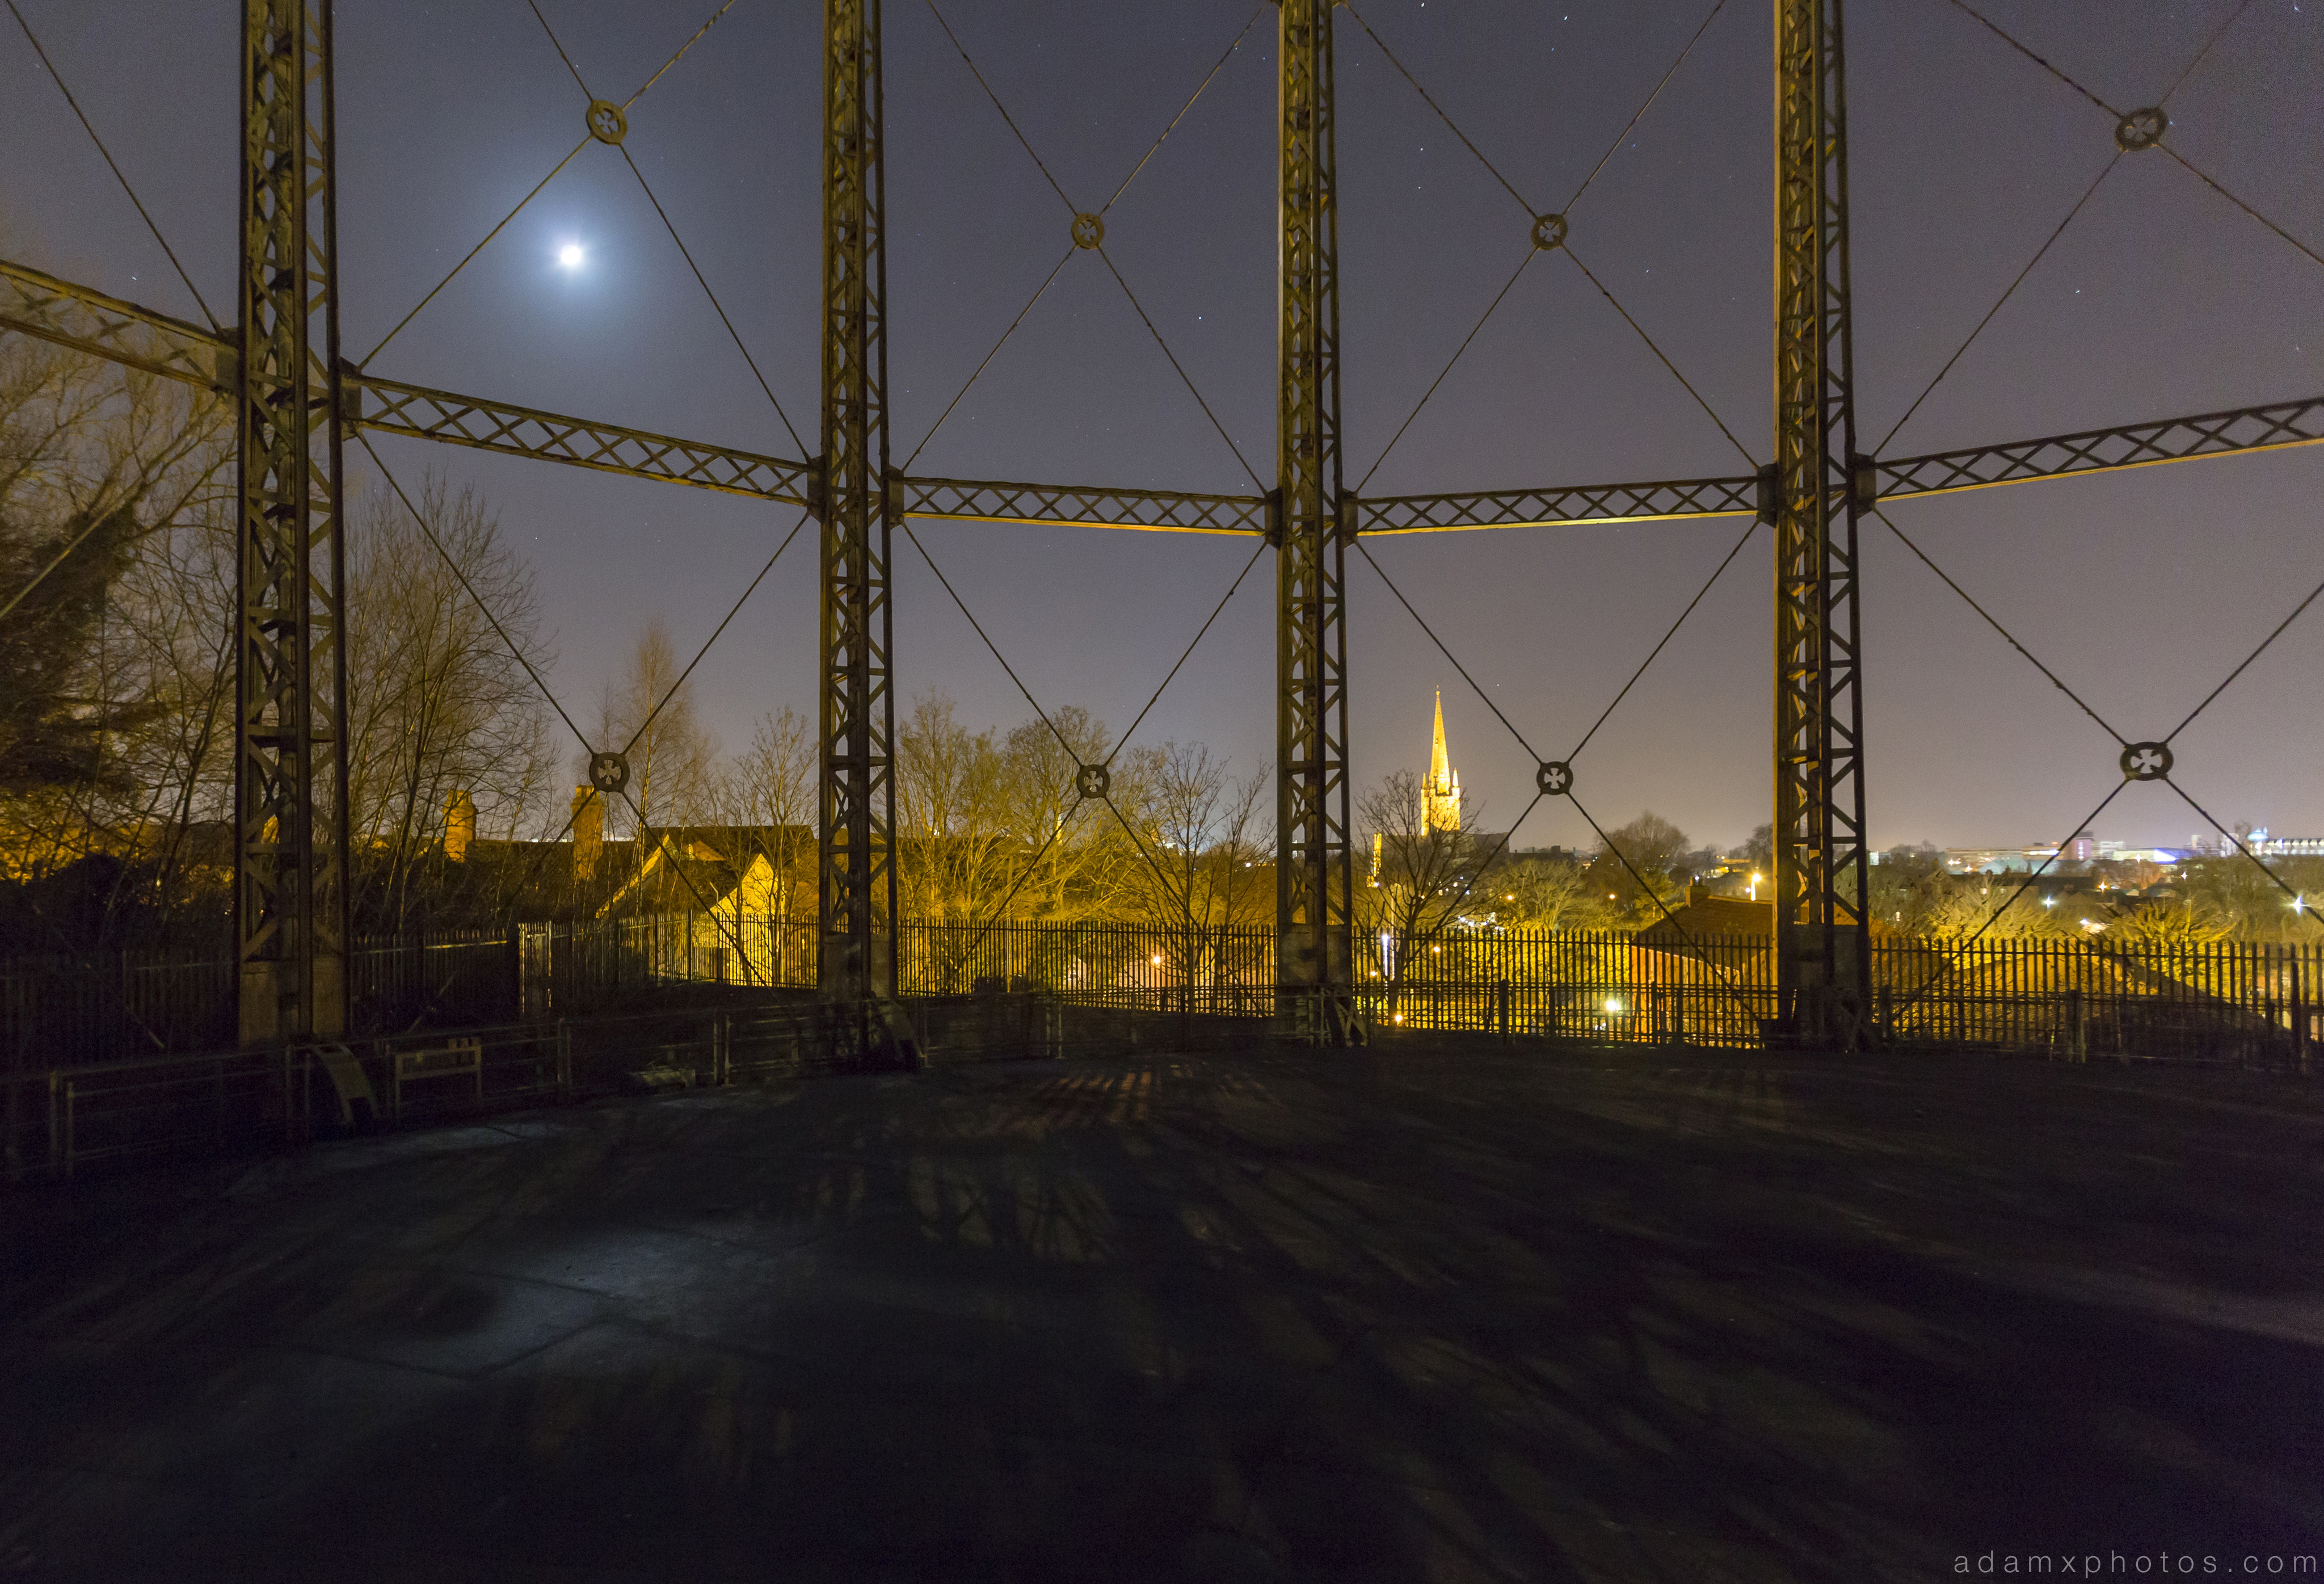 Norwich Gas Holder Night Nighttime Urbex Adam X Urban Exploration Access 2016 Abandoned decay lost forgotten derelict location creepy haunting eerie